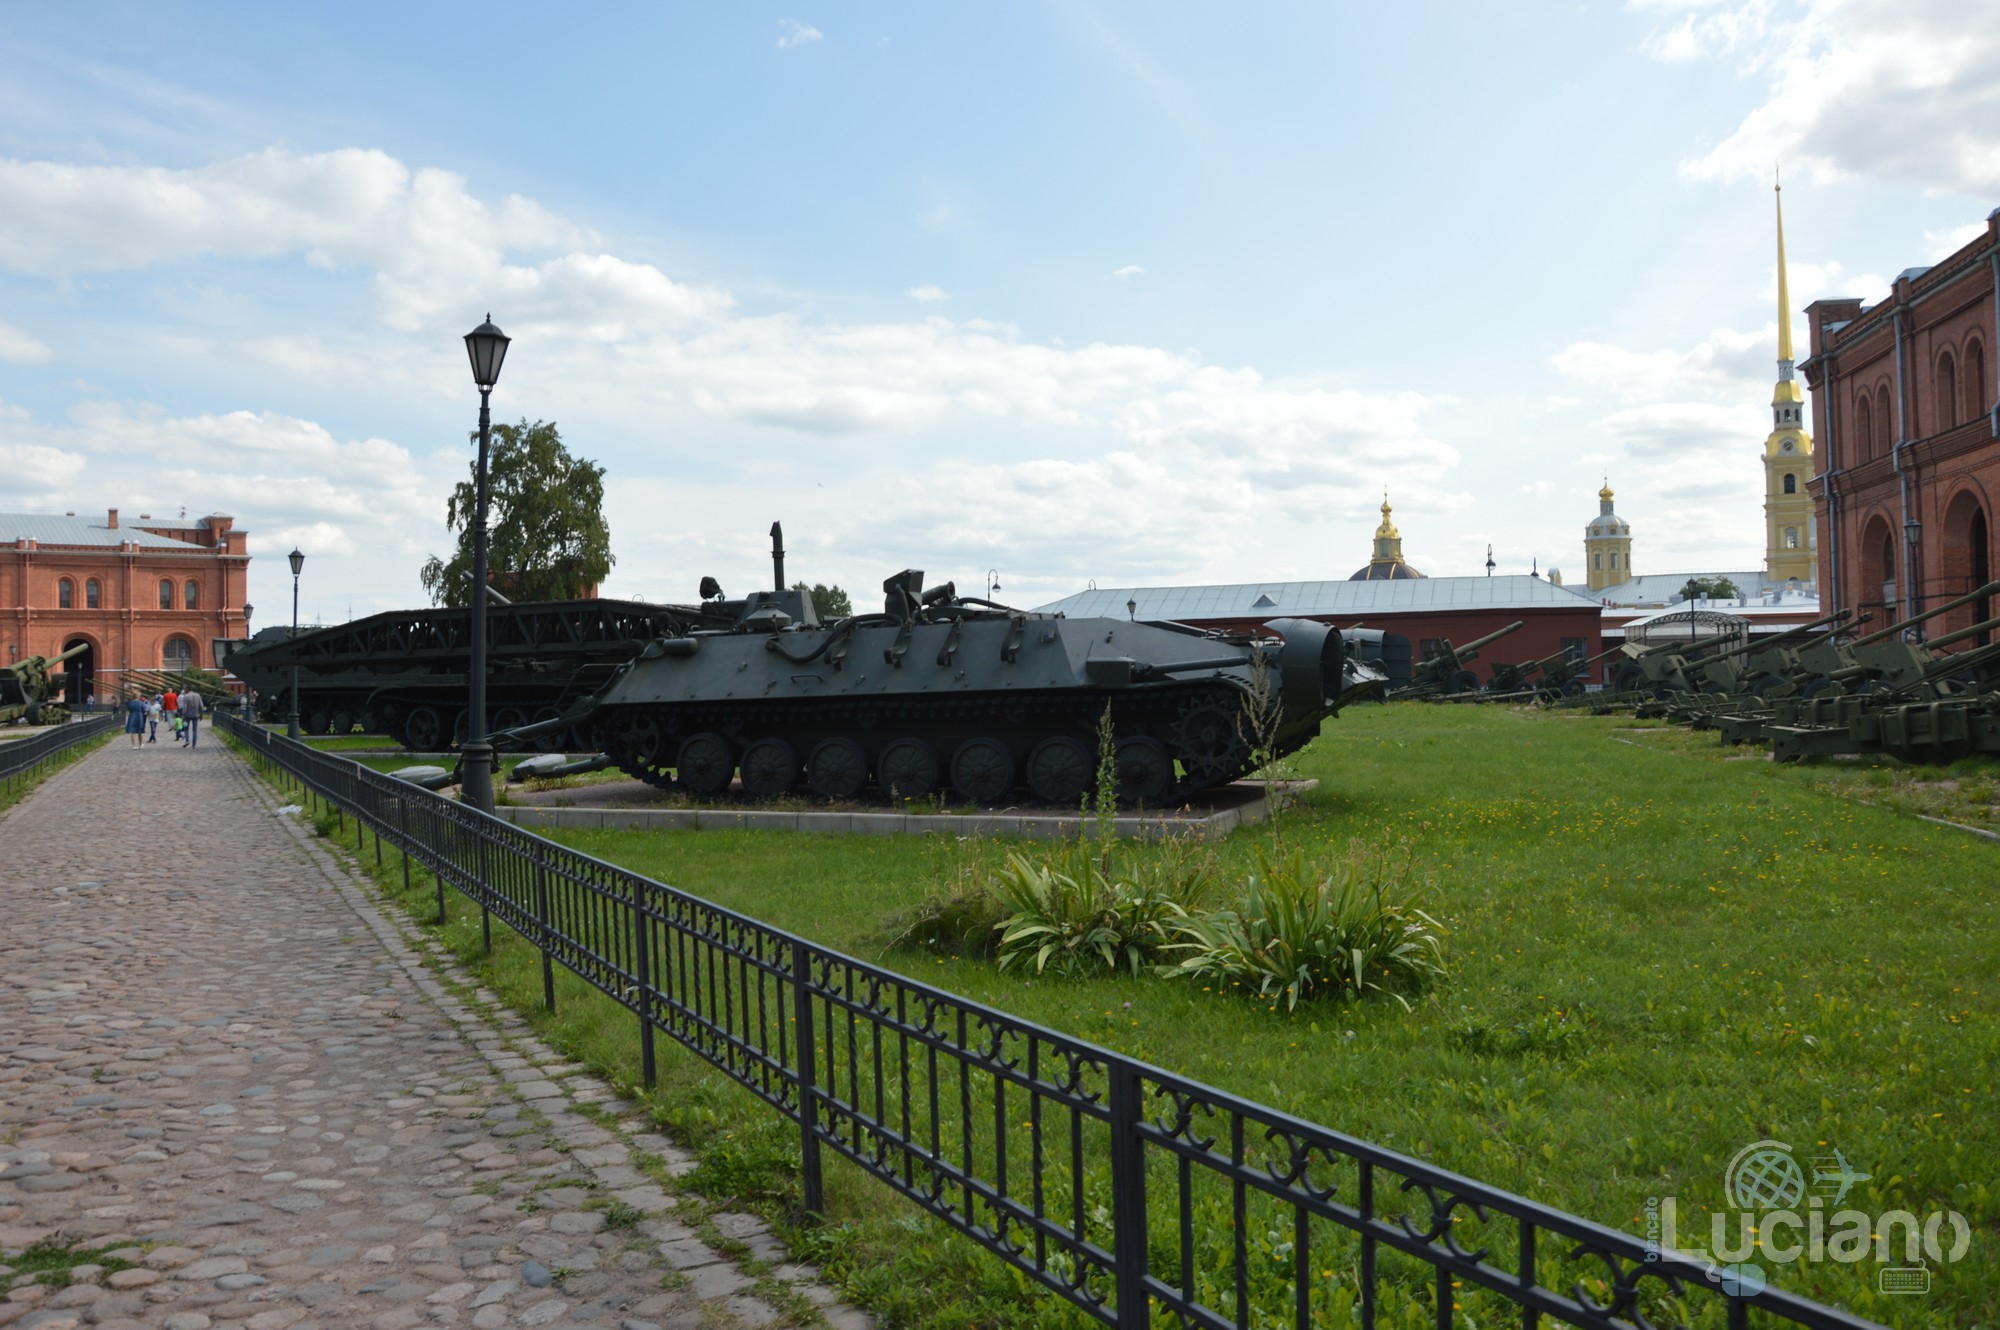 Military-Historical-Museum-of-Artillery-Engineer-and-Signal-Corps-St-Petersburg-Russia-Luciano-Blancato- (90)